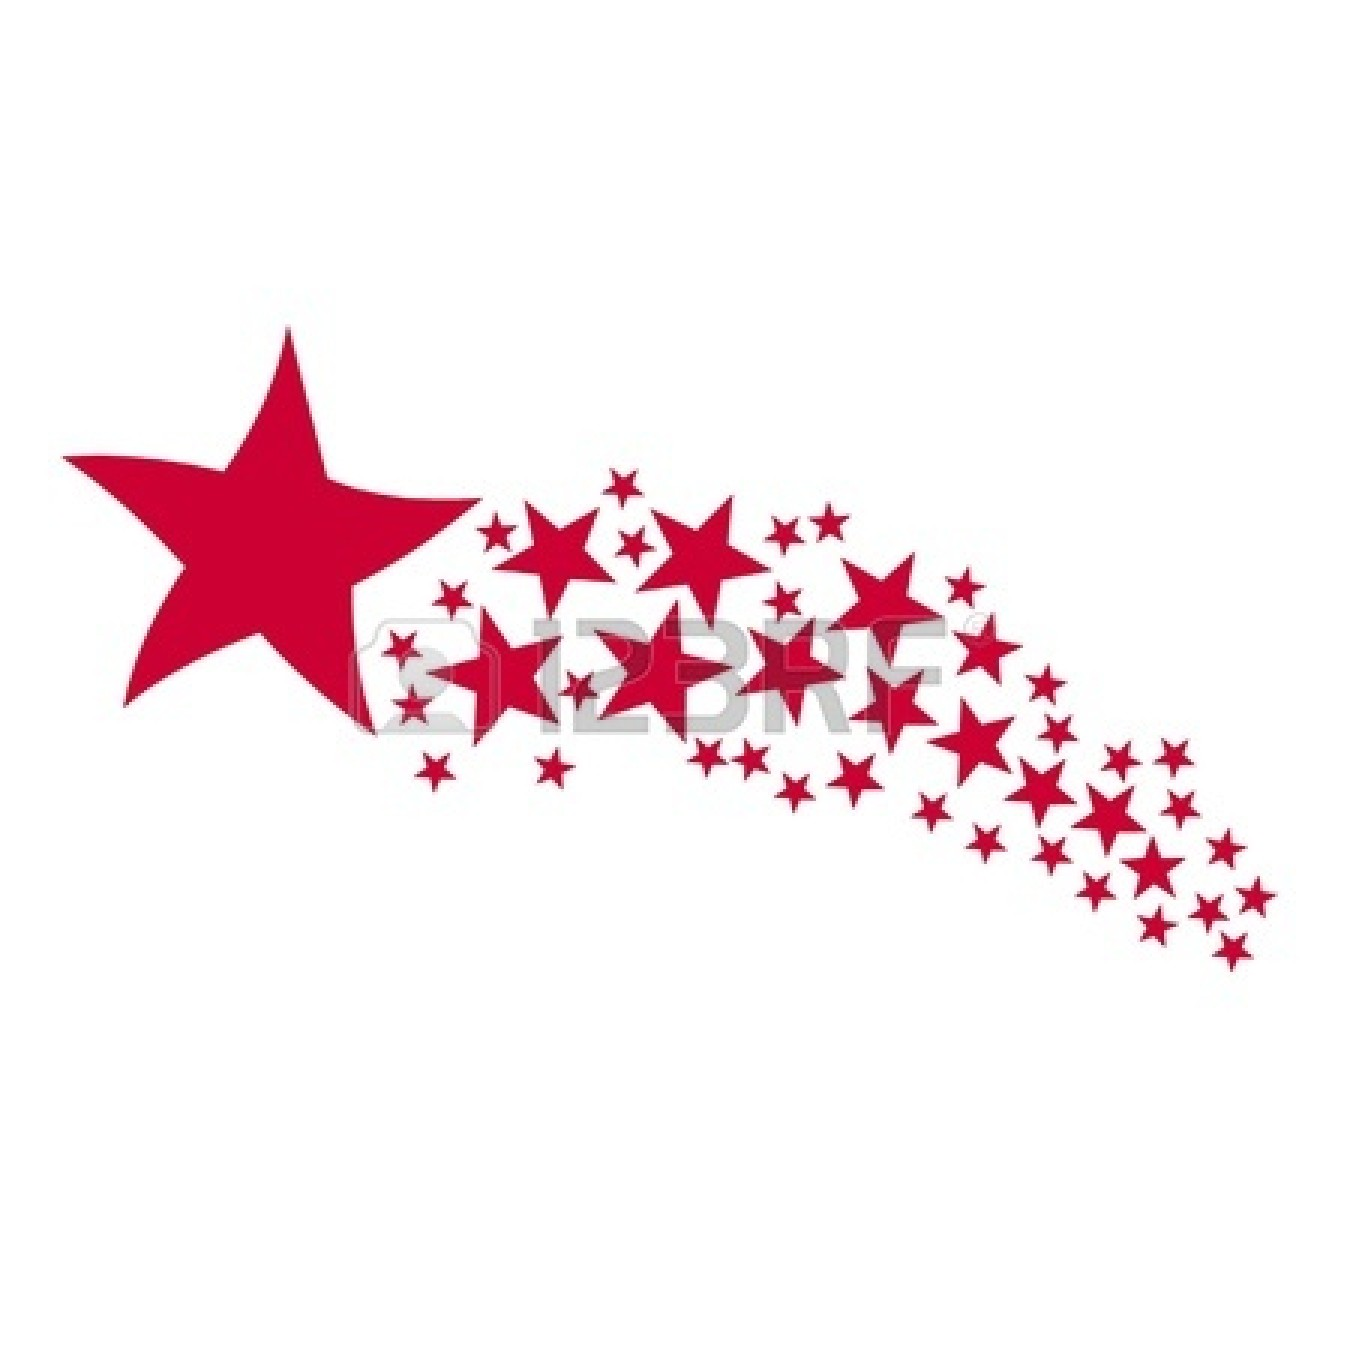 Shooting Star Png Transparent Background.